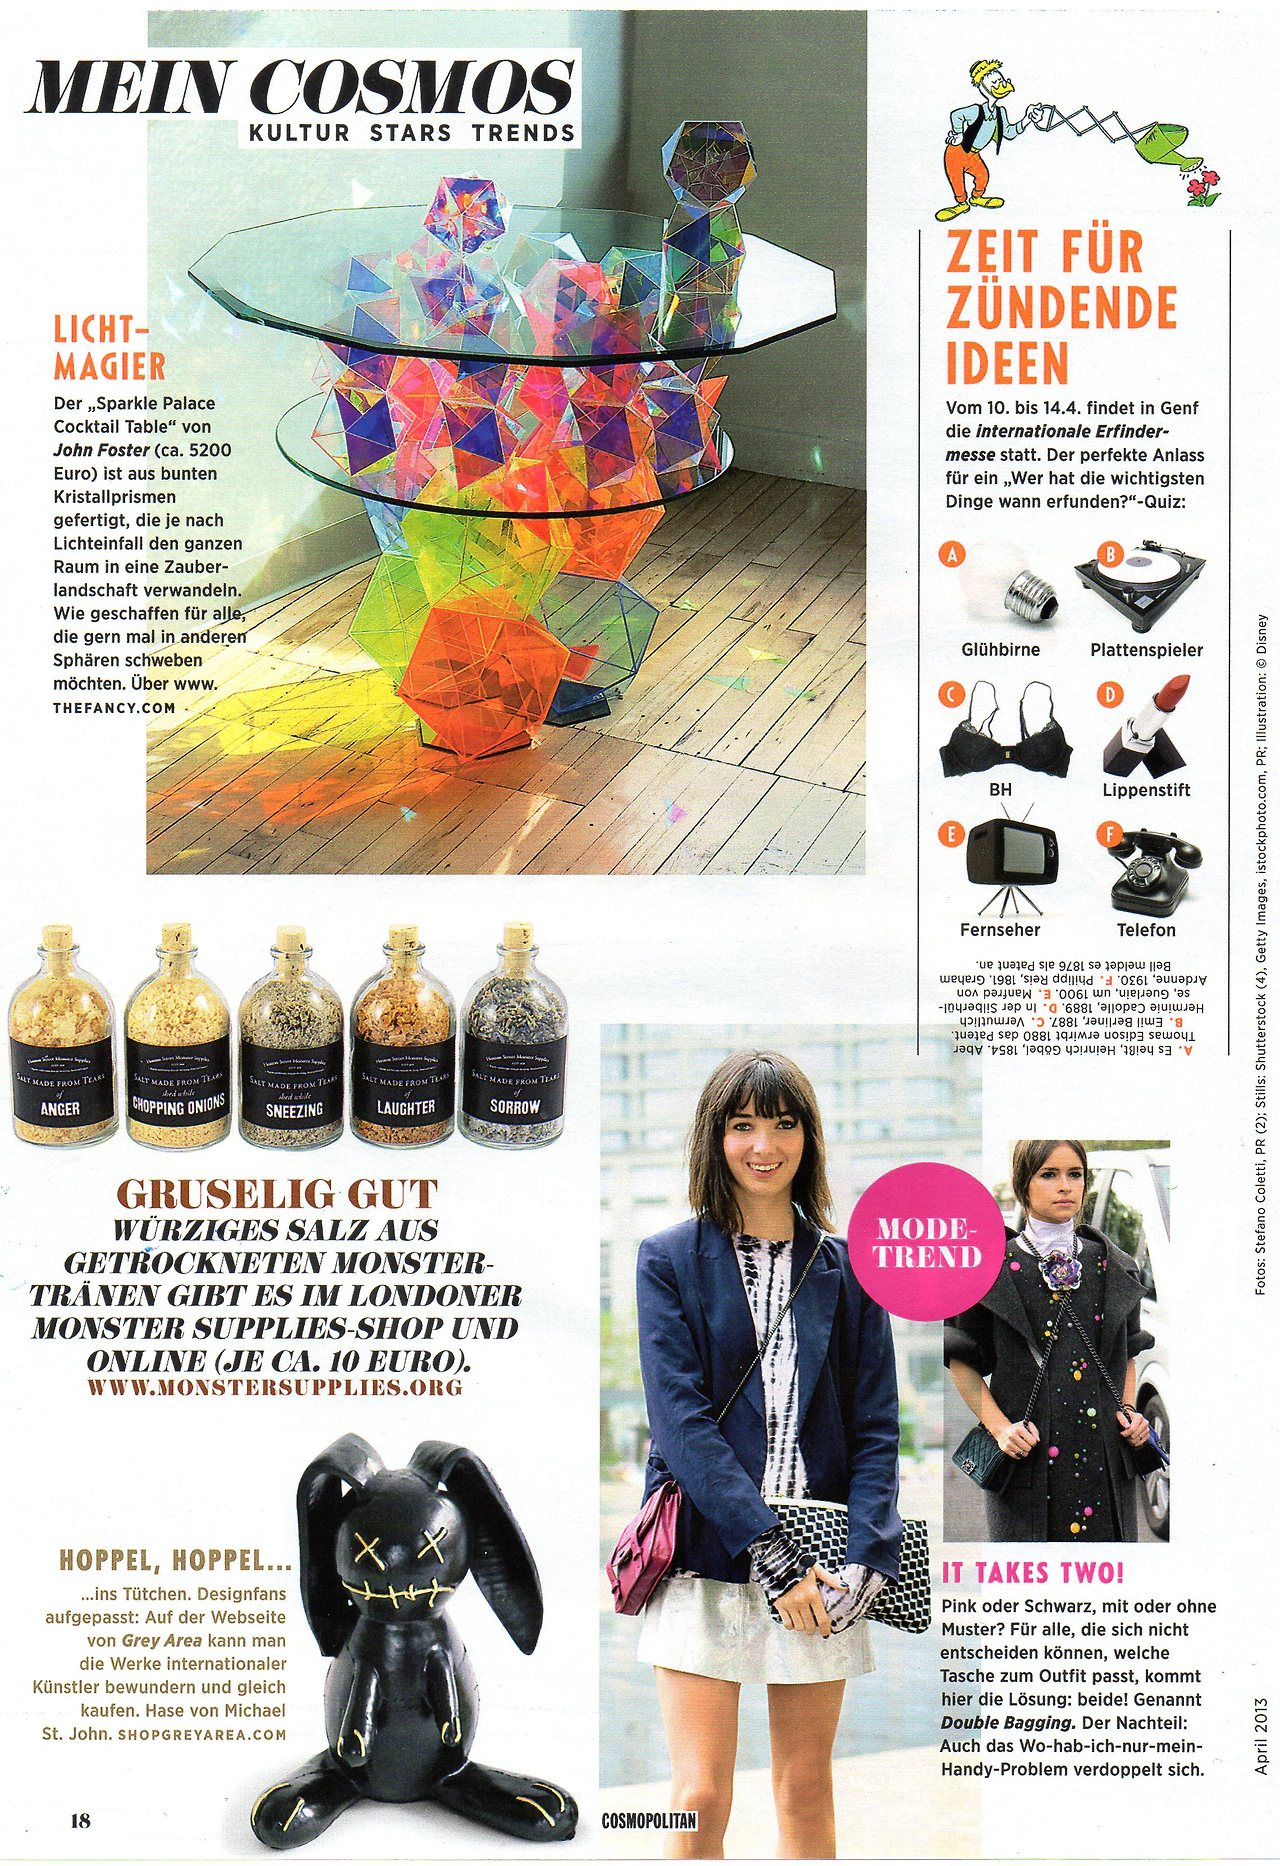 HOPPEL HOPPEL… MASCOTS by MICHAEL ST. JOHN Featured in CosmopolitanGermany, April 2013 See GREY AREA for details & email info@shopgreyarea.com for sales inquiries